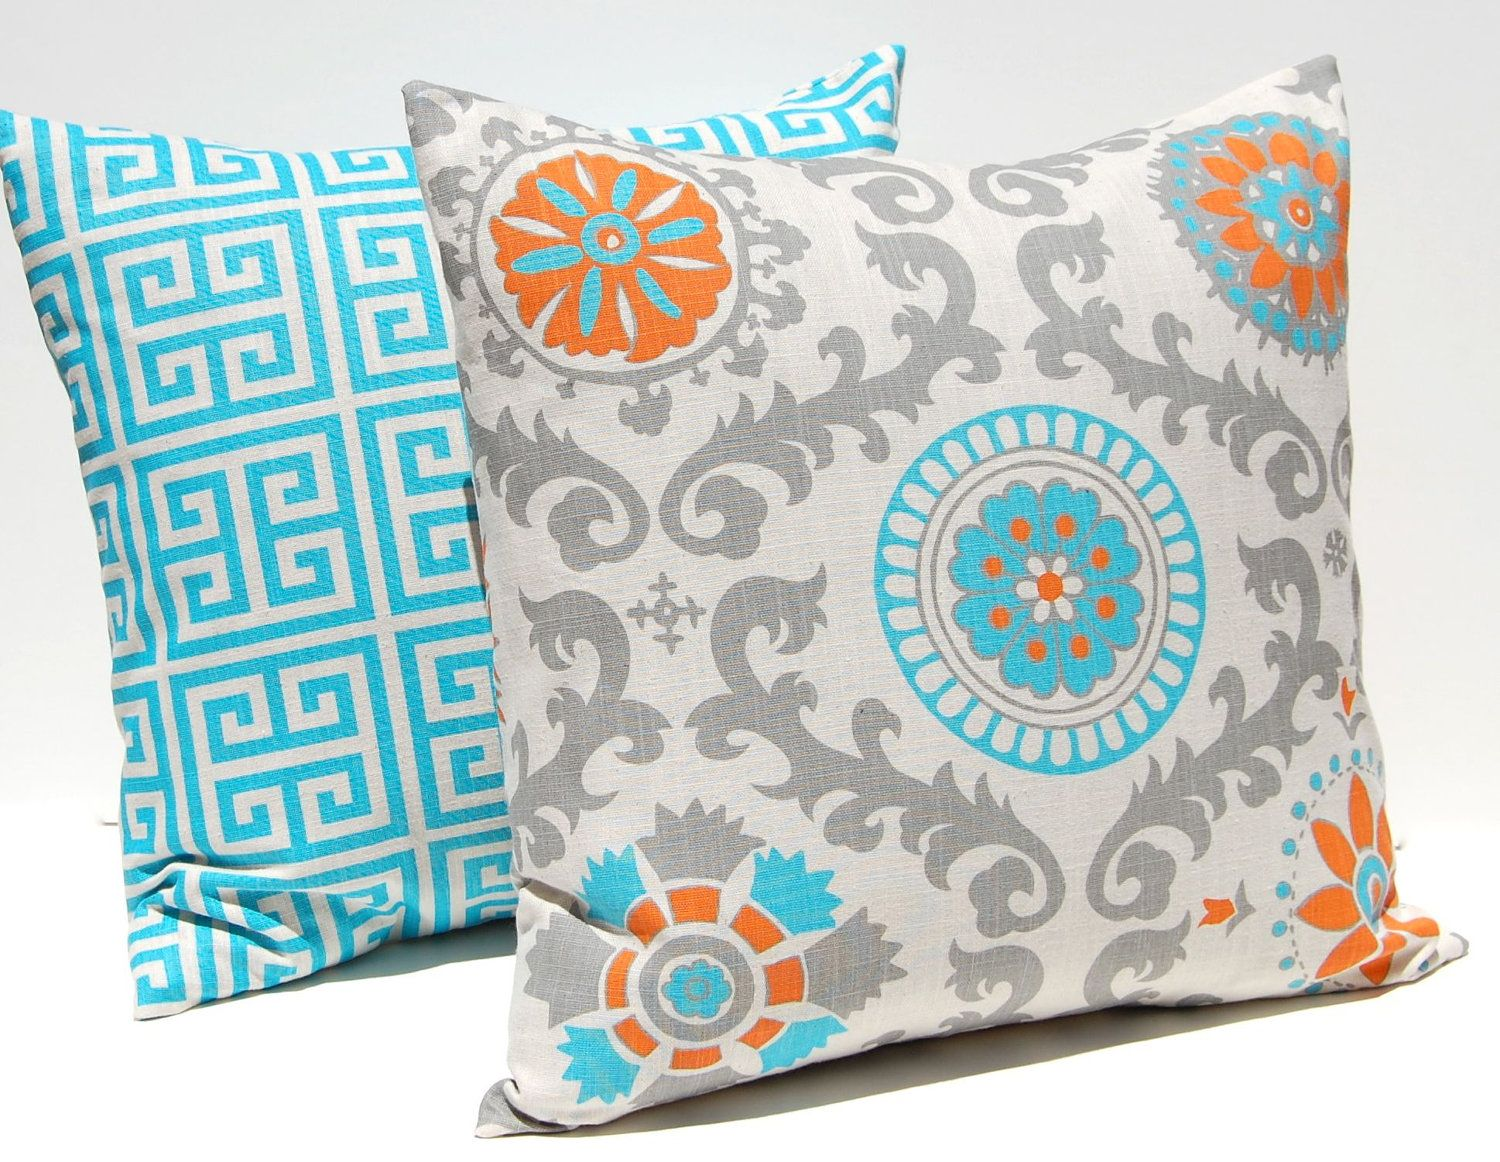 Decorative Turquoise Throw Pillows : Decorative Throw Pillow Covers Turquoise, Orange and Gray on Natural Greek Key and Suzani 20 x ...